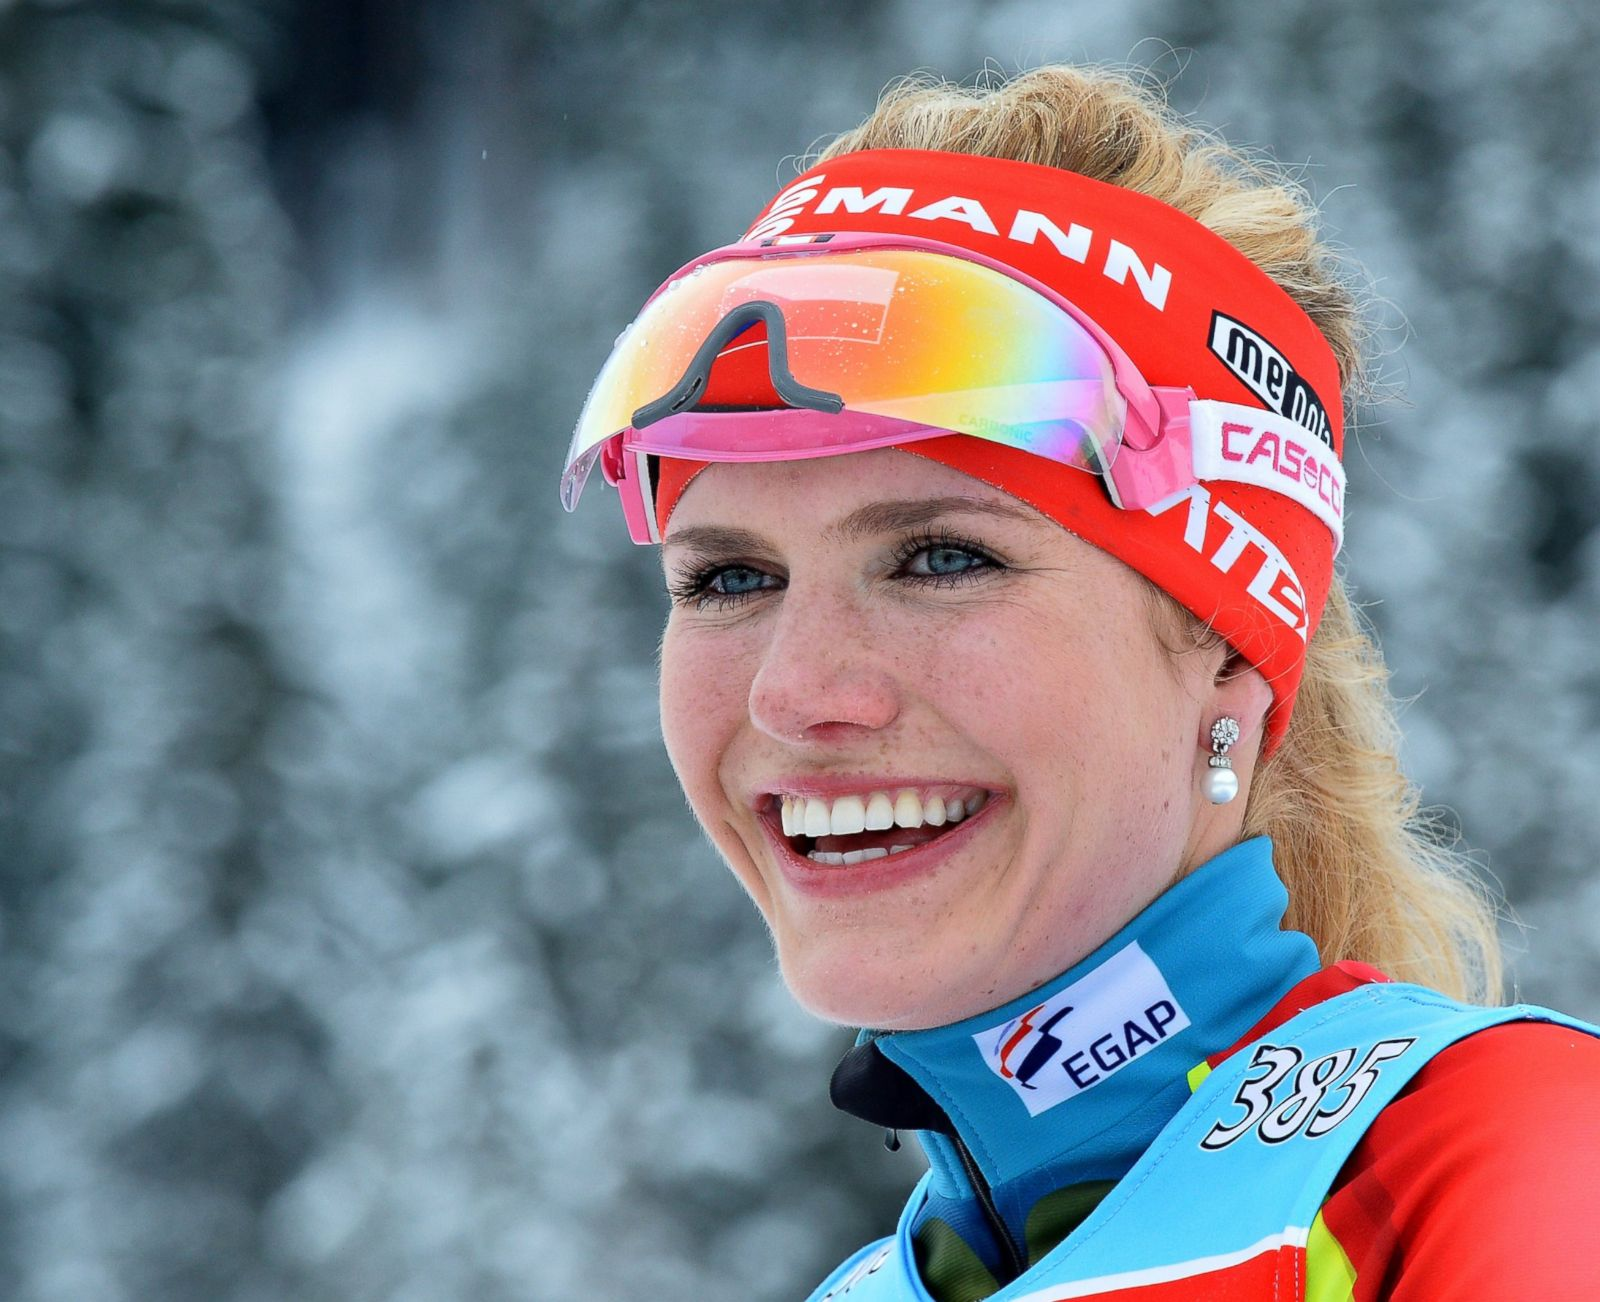 Sexiest Athletes to Compete in Sochi Photos | Image #11